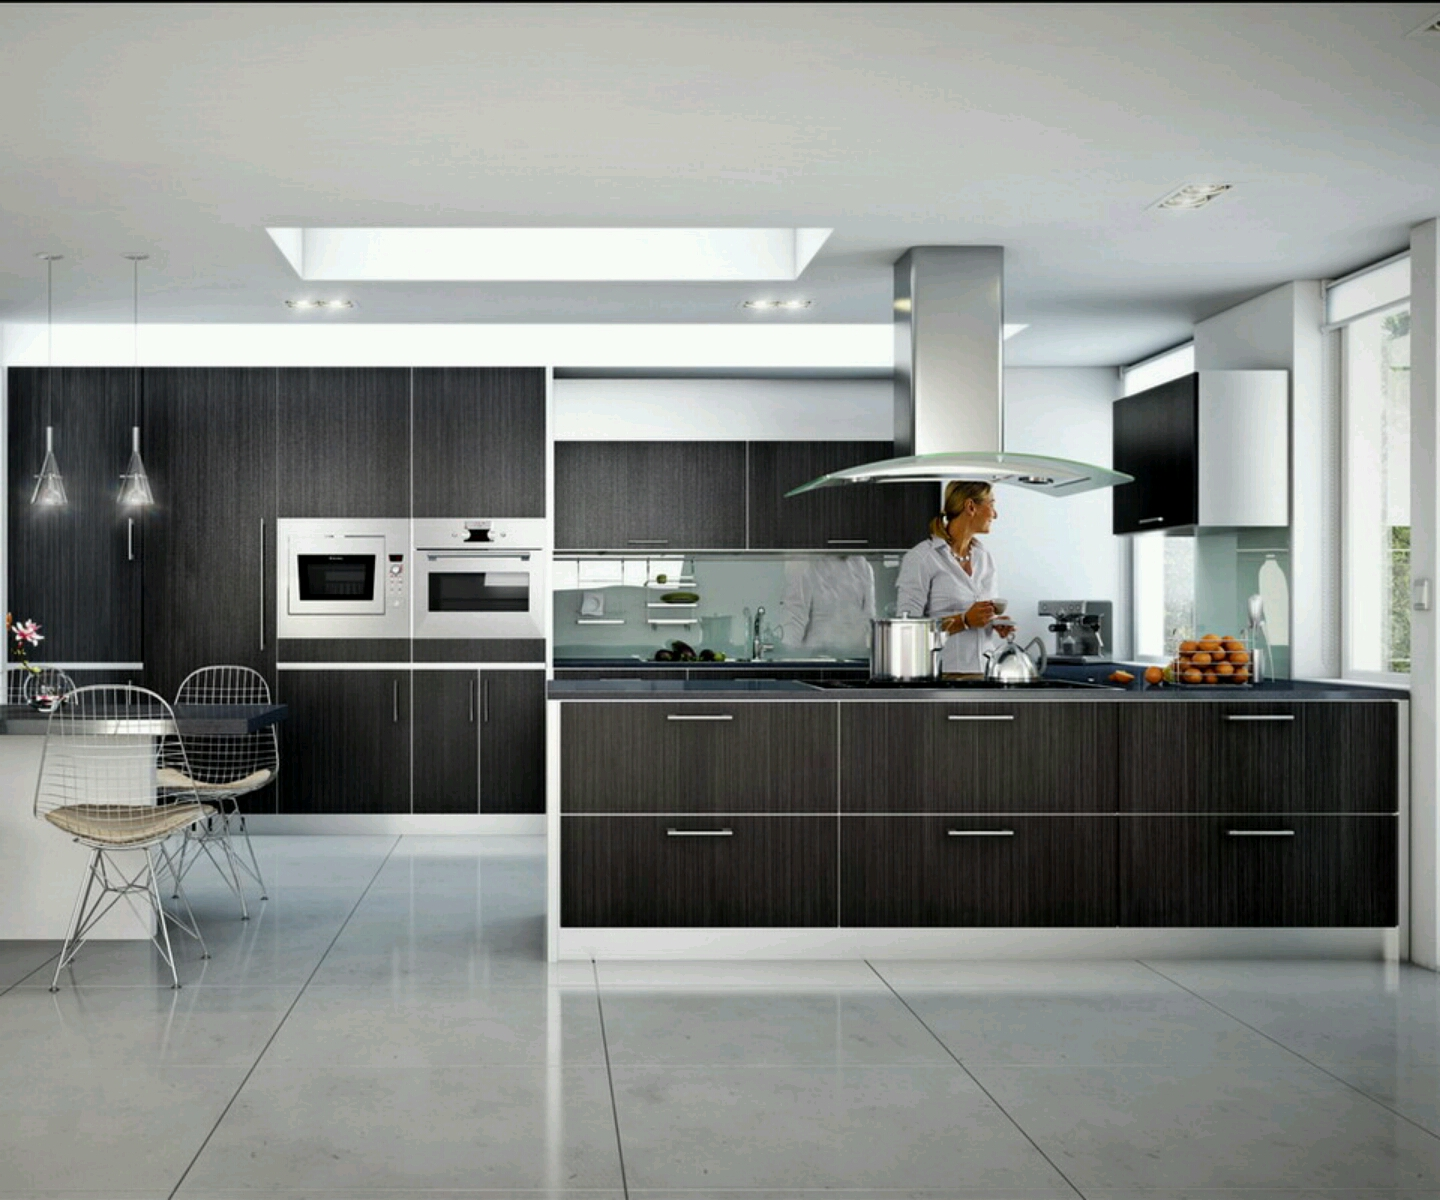 Kitchen Plans By Design: 30 Modern Kitchen Design Ideas